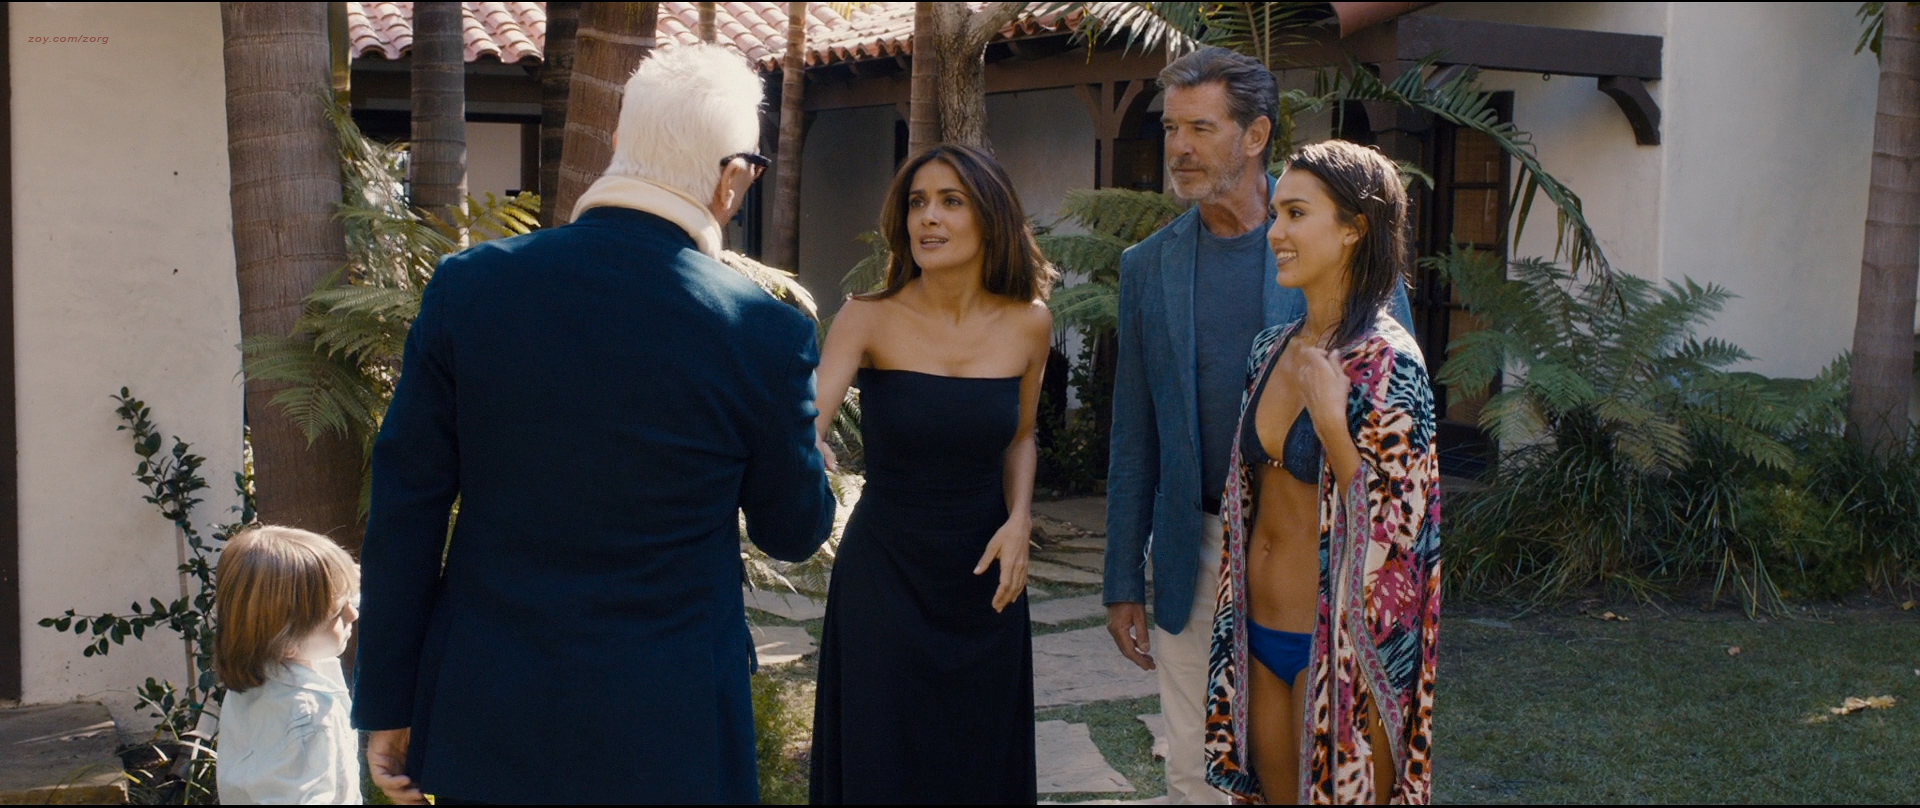 Salma Hayek nude butt Jessica Alba hot bikini and Lindsey Sporrer nude butt - Some Kind Of Beautiful (2014) hd1080p BluRay (15)